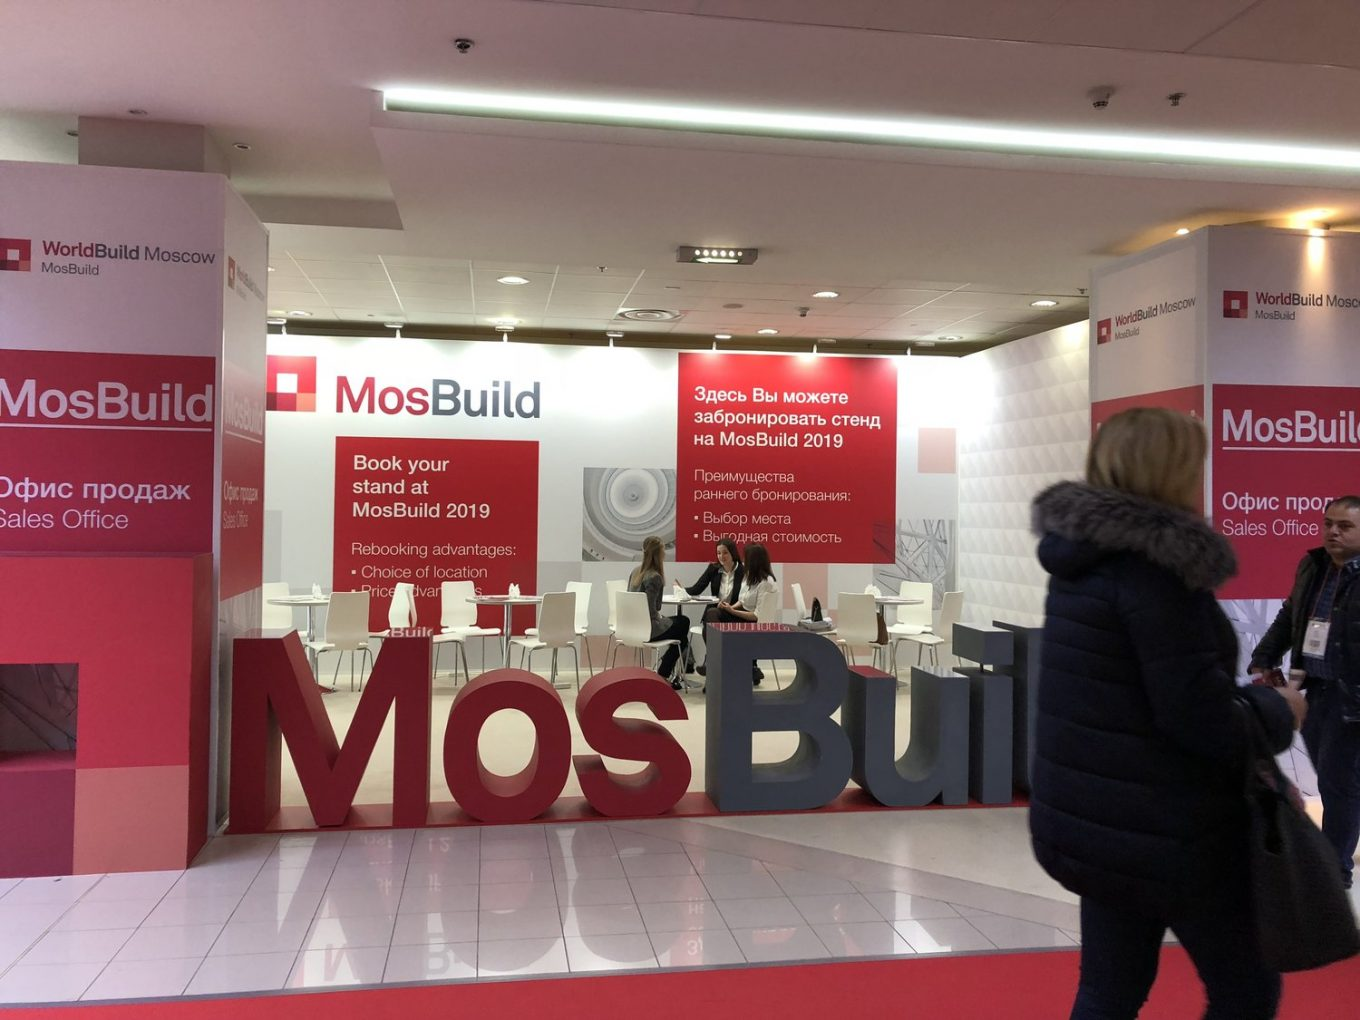 mosbuild moscow 2019 event guide MOSBUILD MOSCOW 2019 EVENT GUIDE Mosbuild2018051